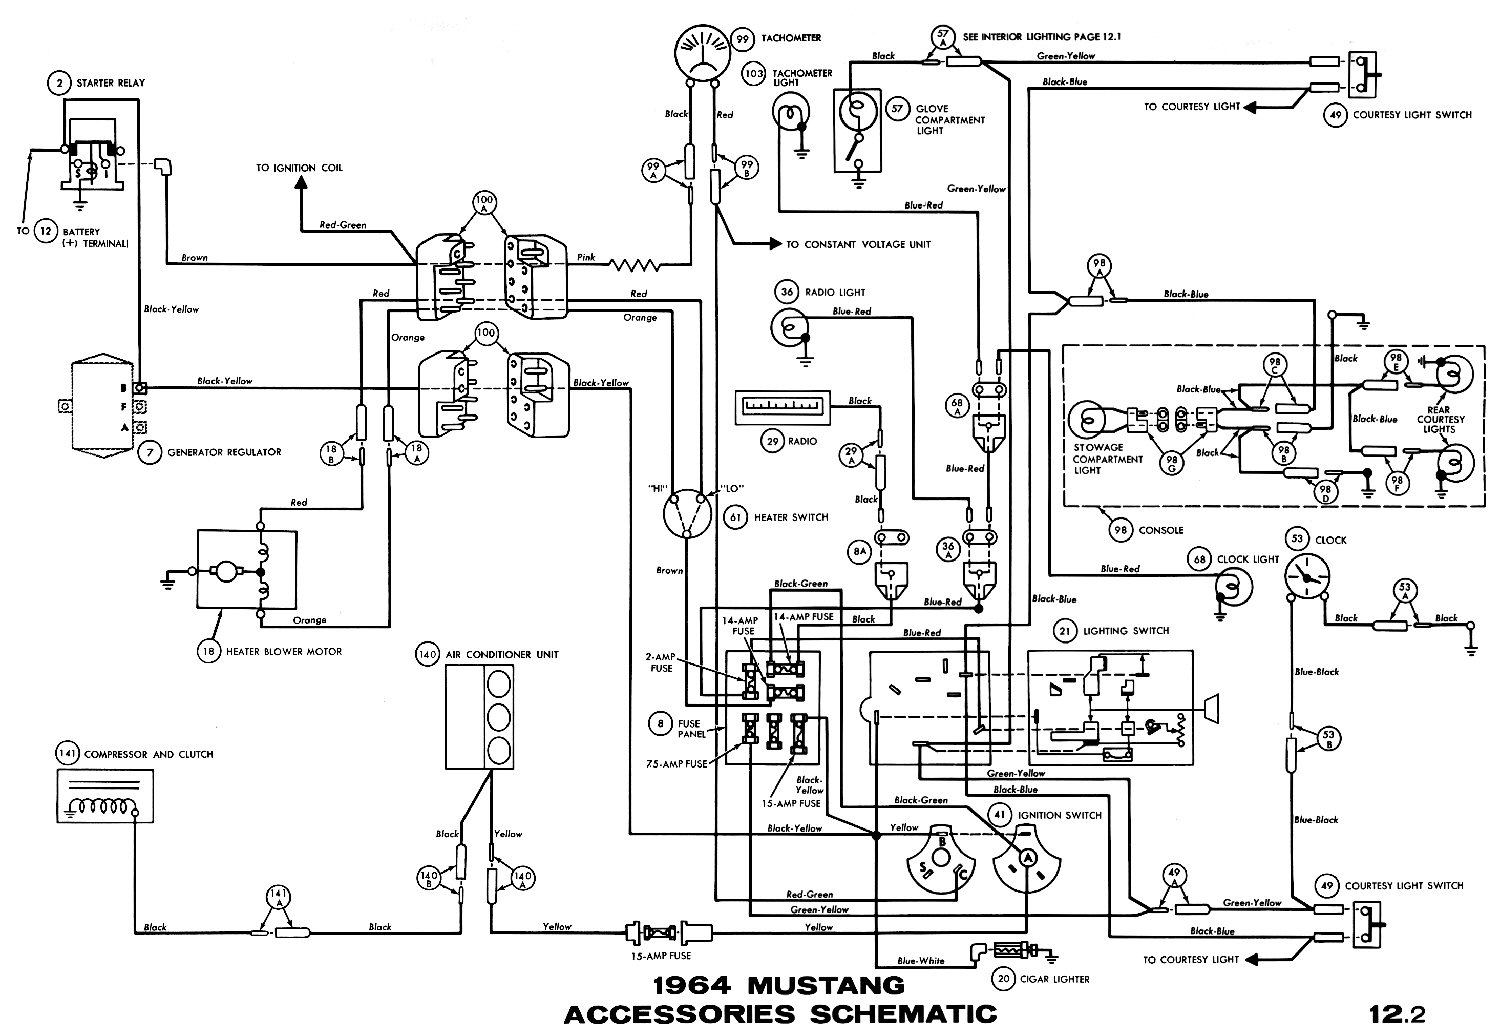 wiring diagram wiring diagram for impala the wiring diagram mustang wiring diagrams average joe restoration 1964 mustang accessories pictorial or schematic air conditioner